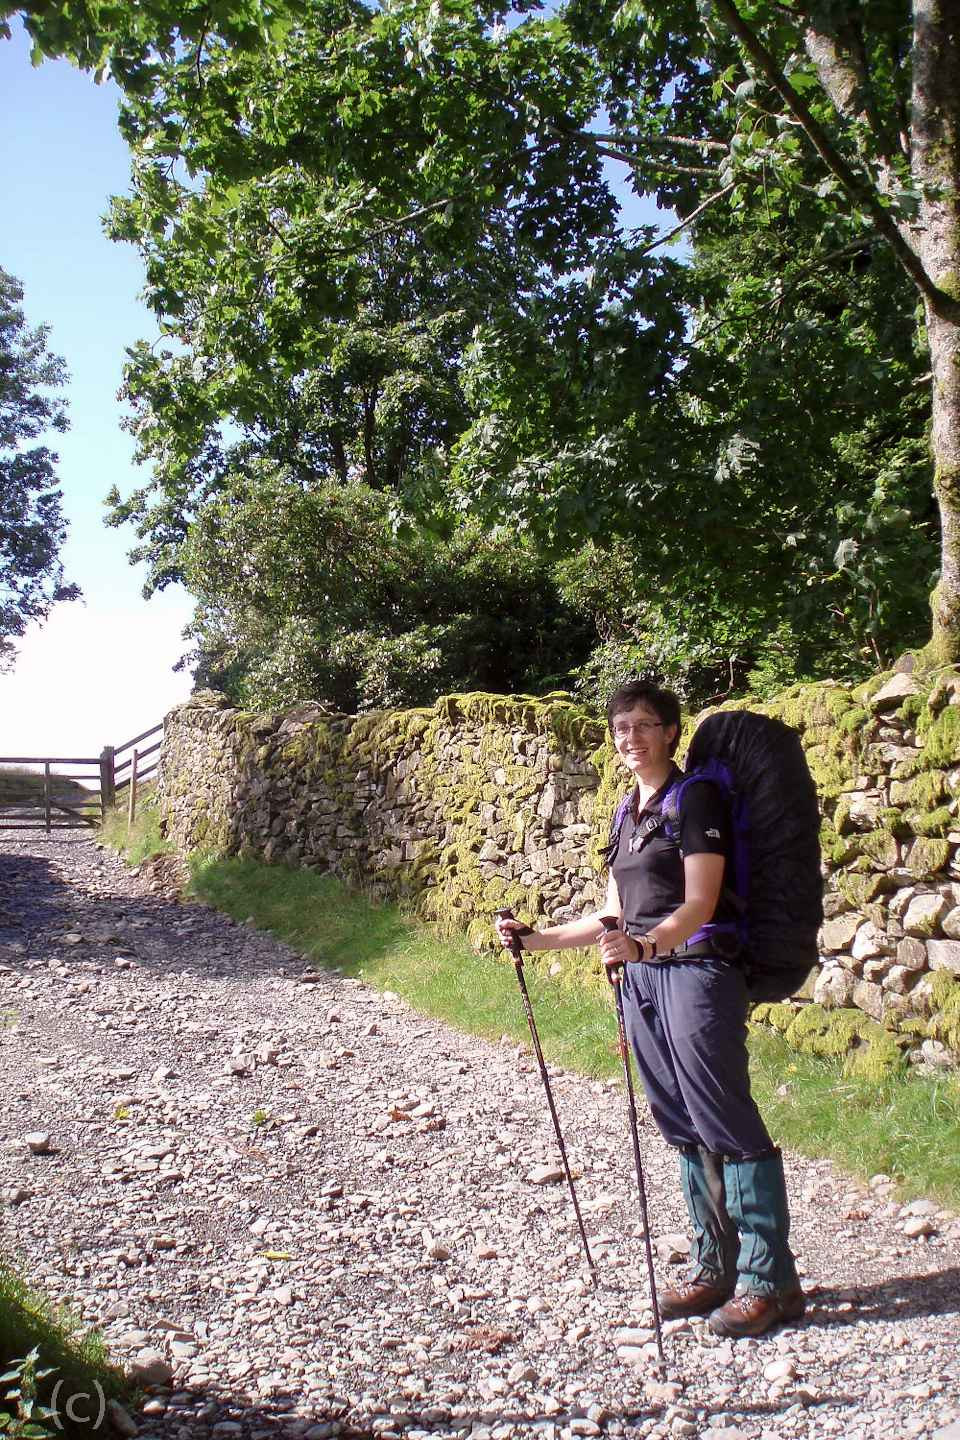 A review of walking poles for hiking with arthritis or joint pain. How to use walking poles and how could walking poles help on a trek or ramble. On Falcondale Life blog. Image description: woman with backpack on a path using a pair of walking poles.